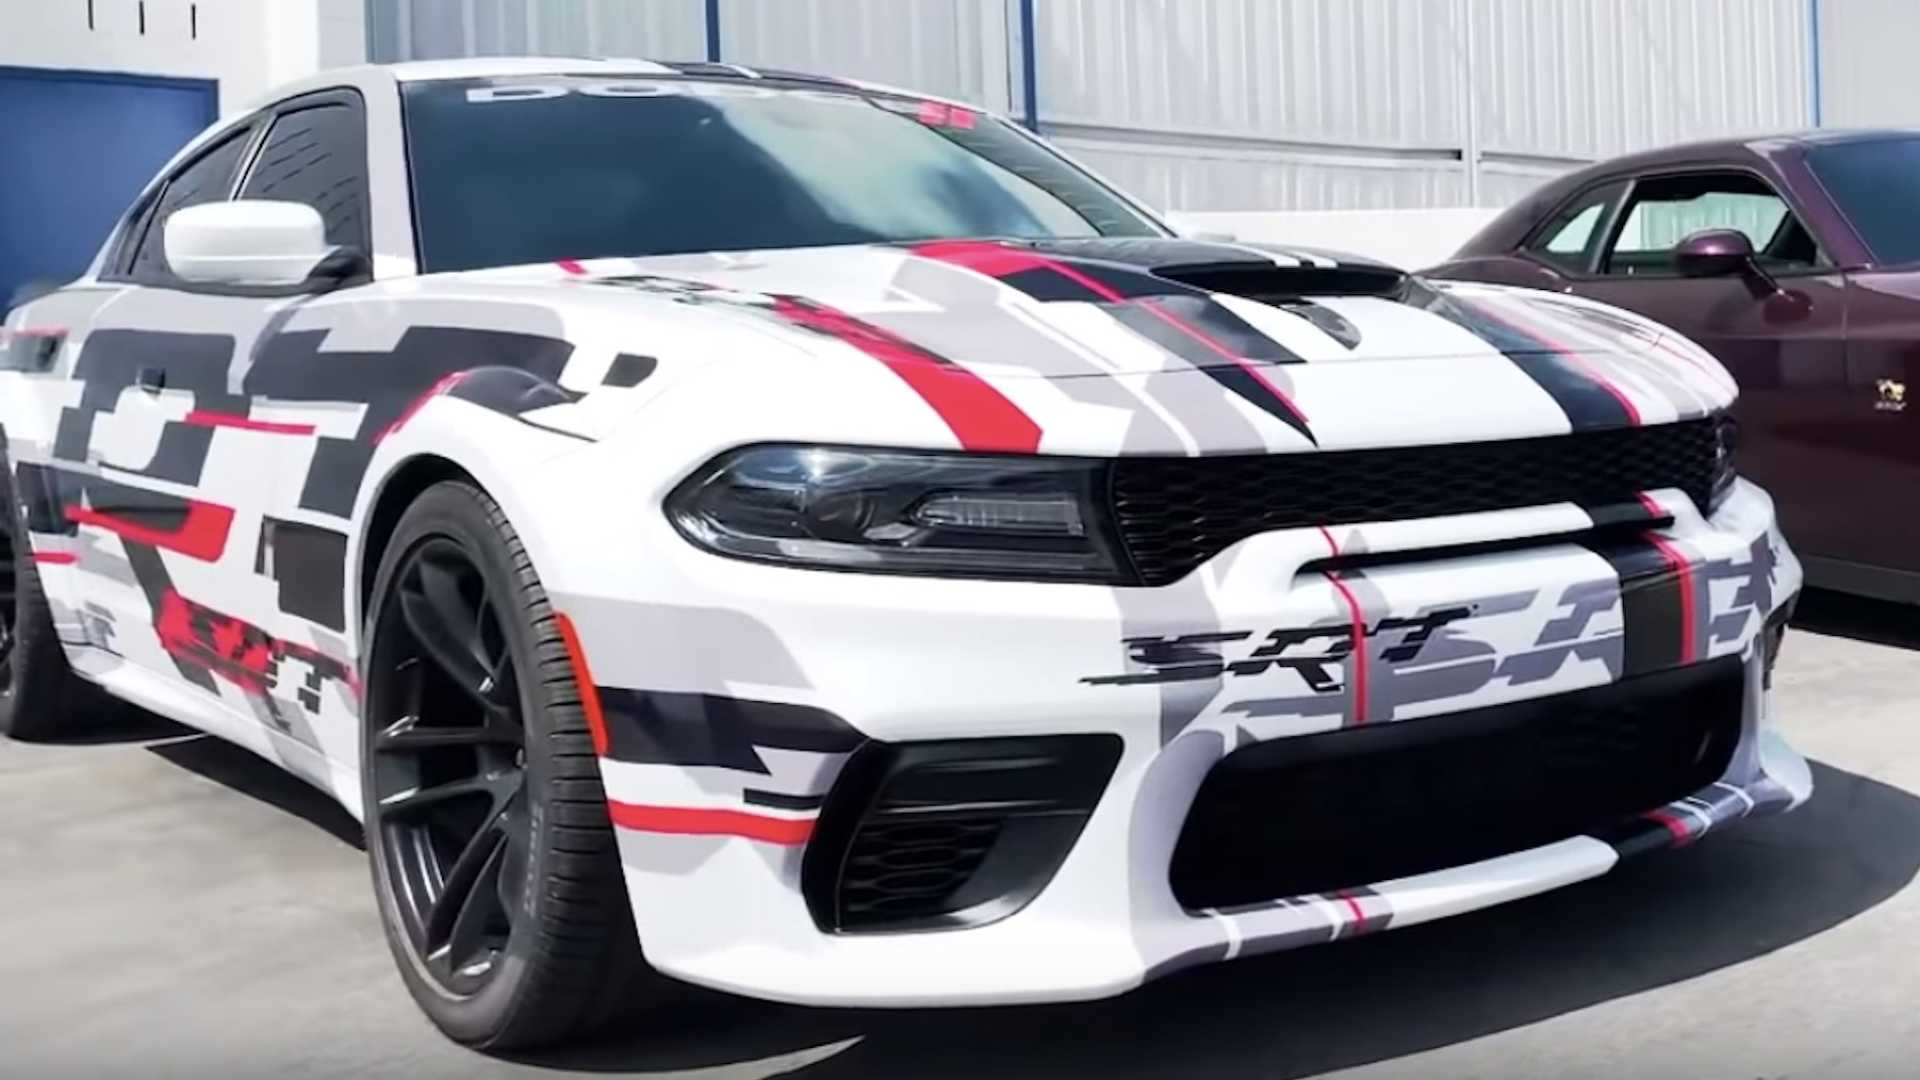 75 Great 2020 Dodge Charger Scat Pack Widebody Concept for 2020 Dodge Charger Scat Pack Widebody